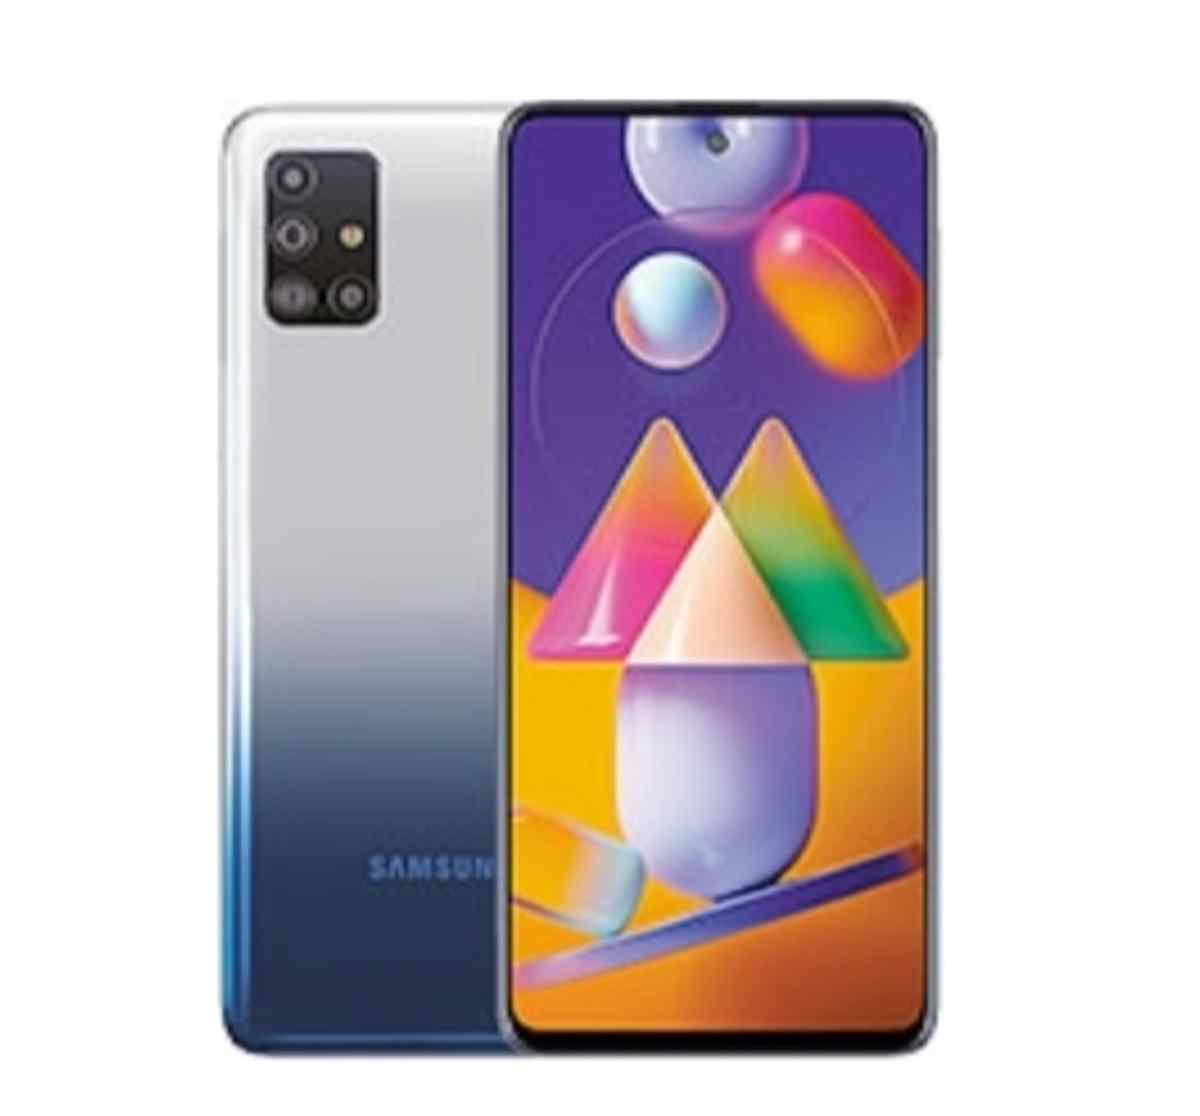 Samsung Galaxy M31s, Galaxy m31s, Samsung Galaxy M31s price in Nigeria, how much is Samsung M31s, price of Samsung Galaxy M31s, Samsung M31s specs and price in Nigeria, Nigerian price of Samsung Galaxy M31s, Samsung Galaxy M31s specs, price, and image, samsung m31s in USA, India, UAE